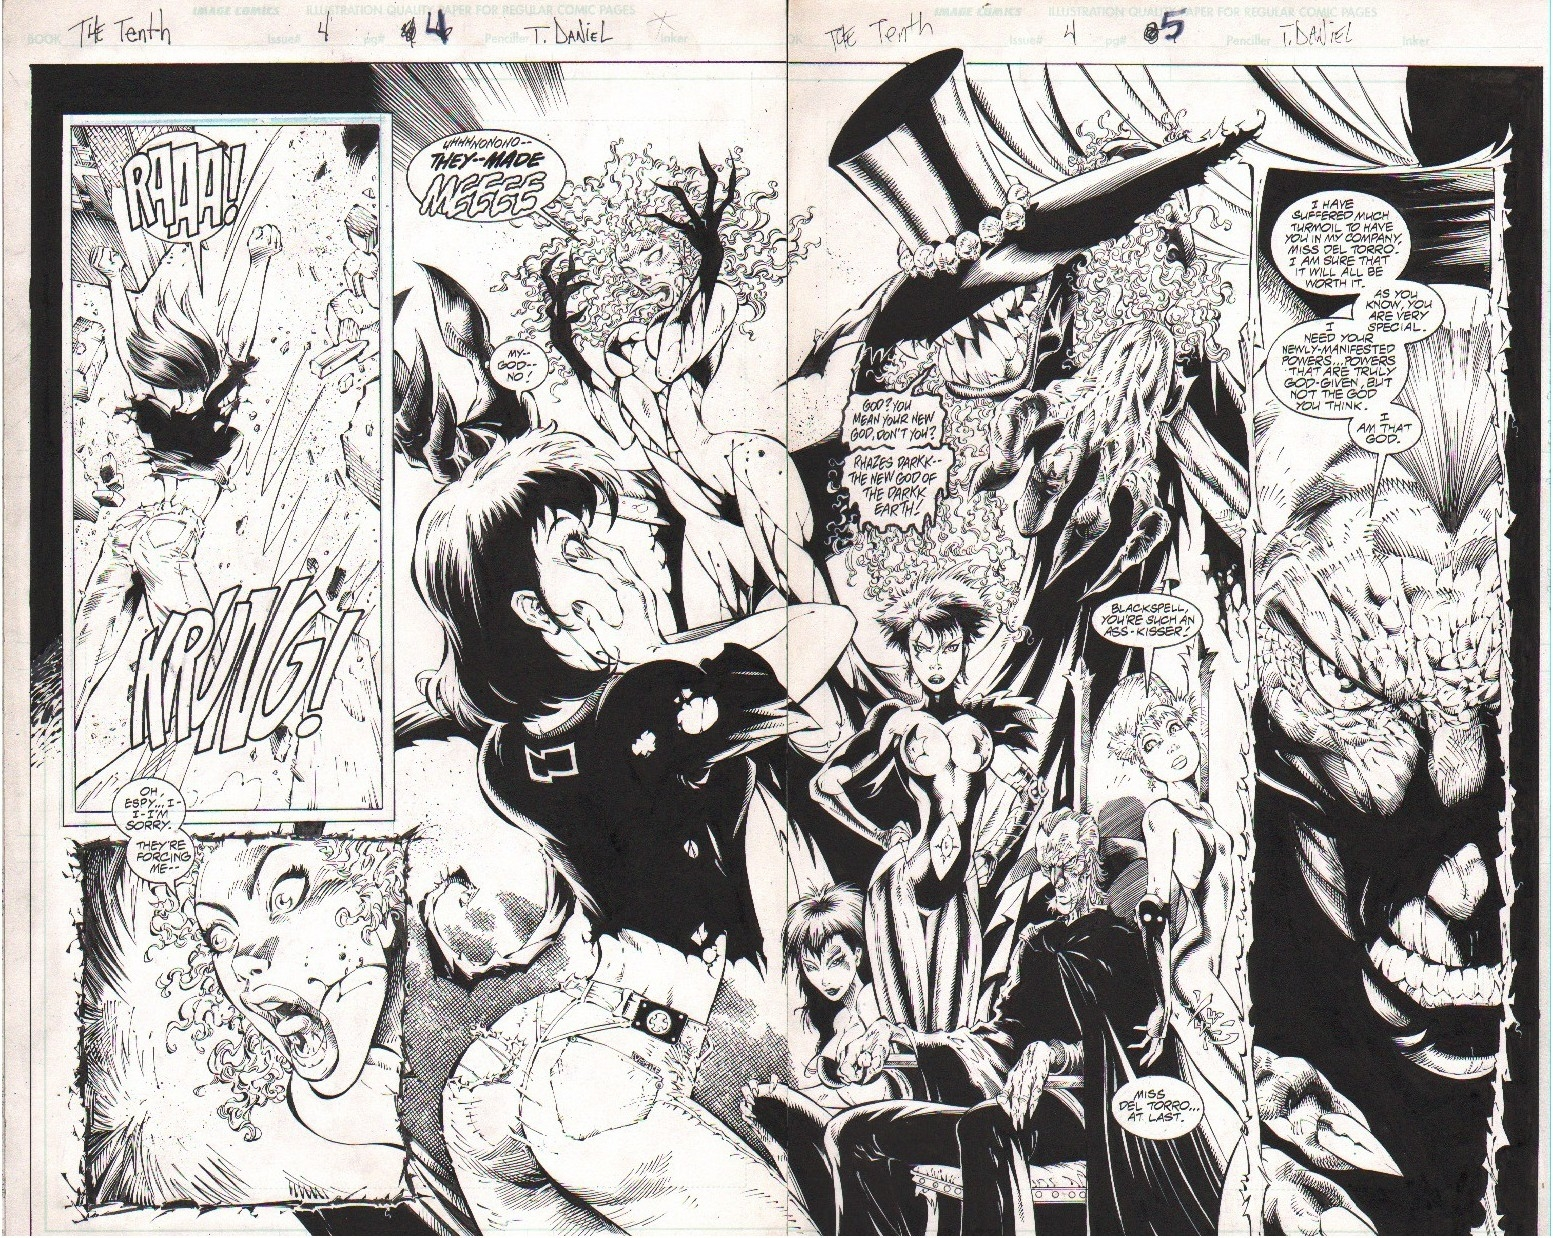 The Tenth # 4 pgs 4 & 5 by Tony Daniel, in Danny Morales's